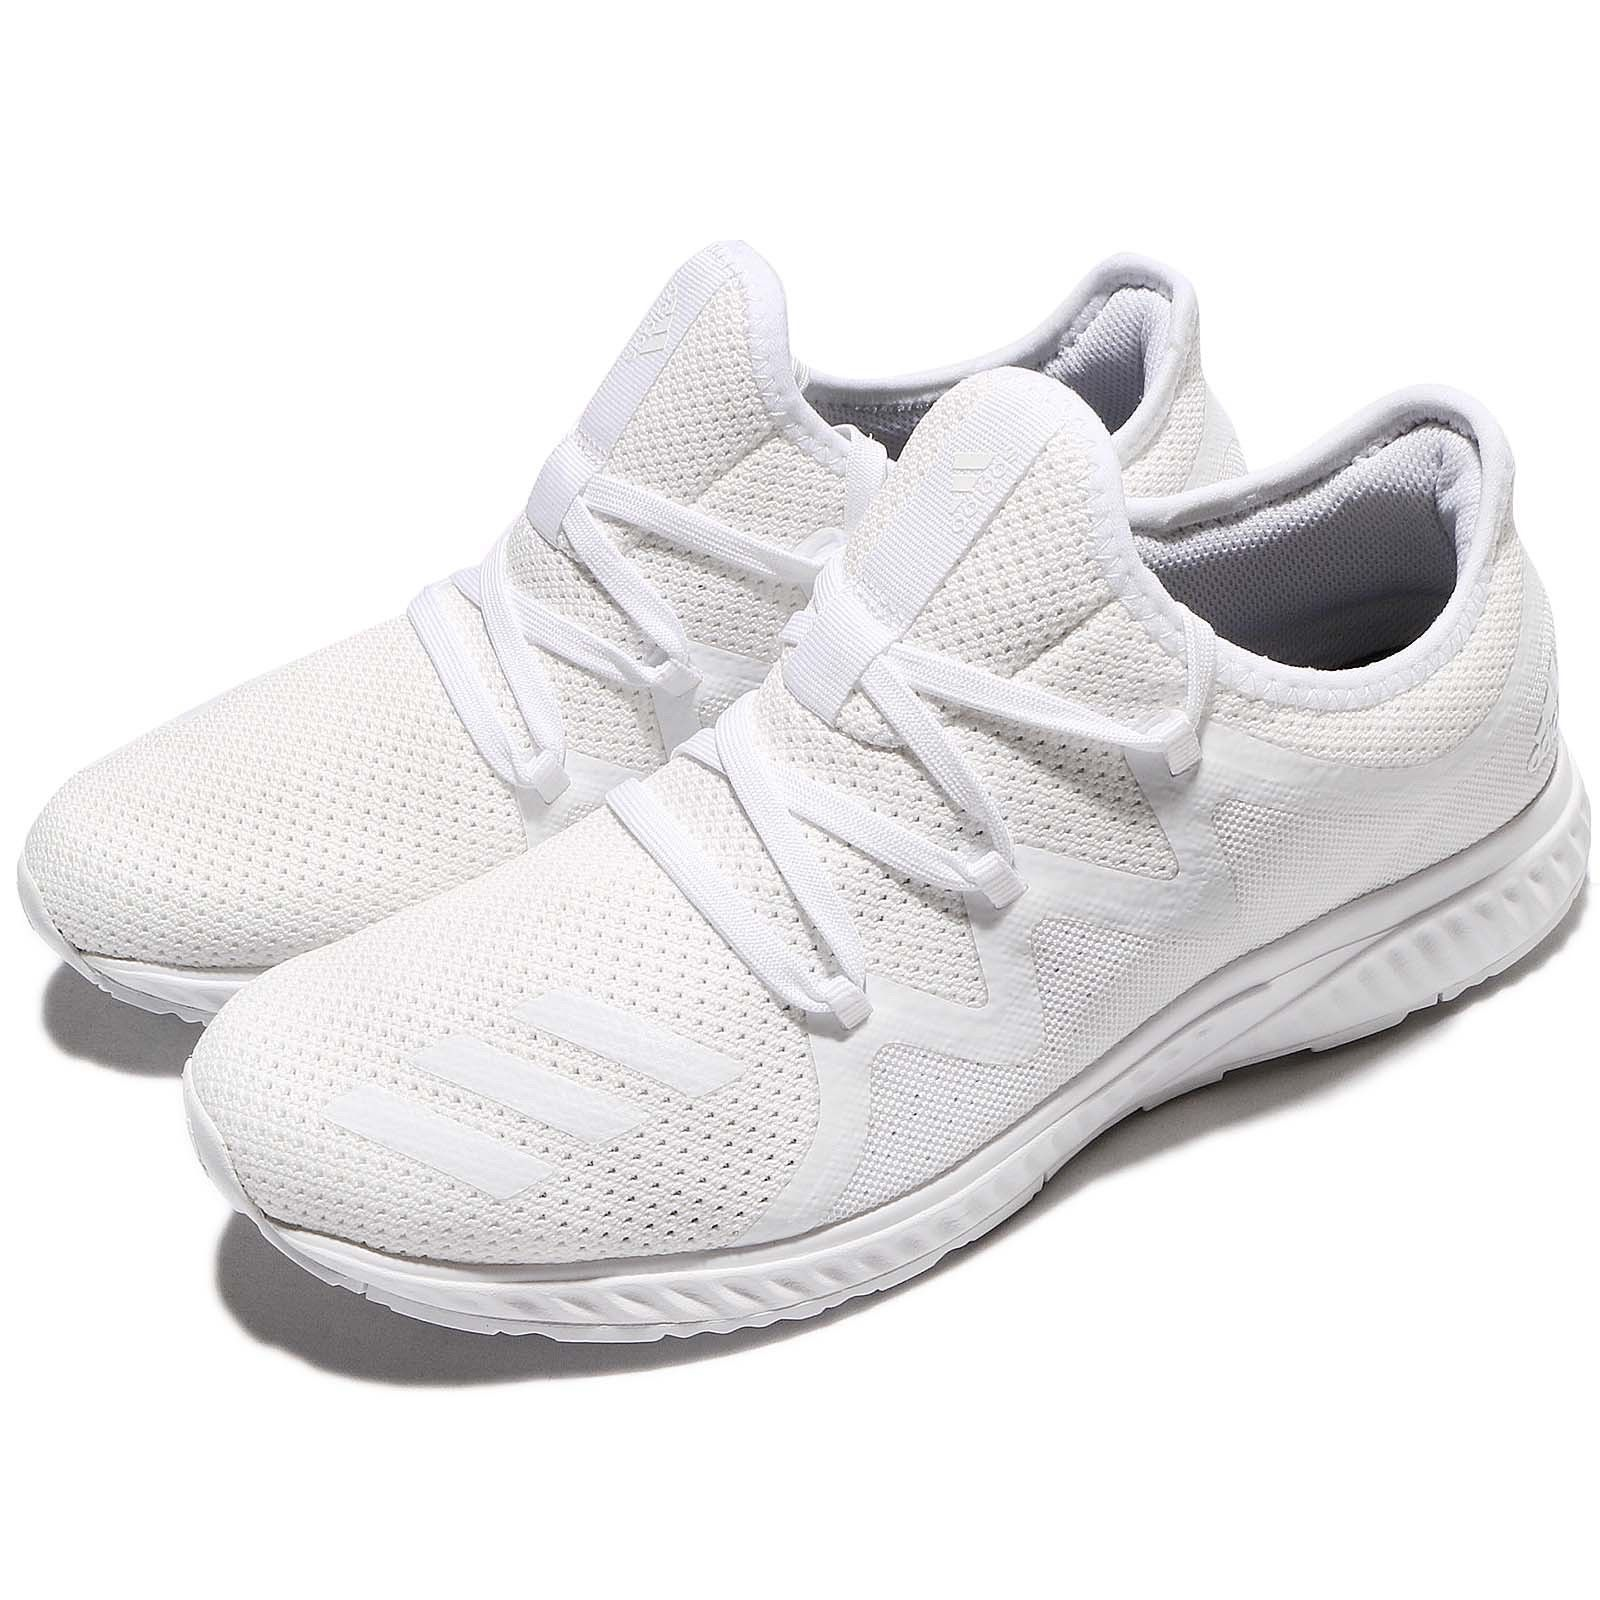 Adidas Ultra Boost 2.0: Triple White Finish Line: $180